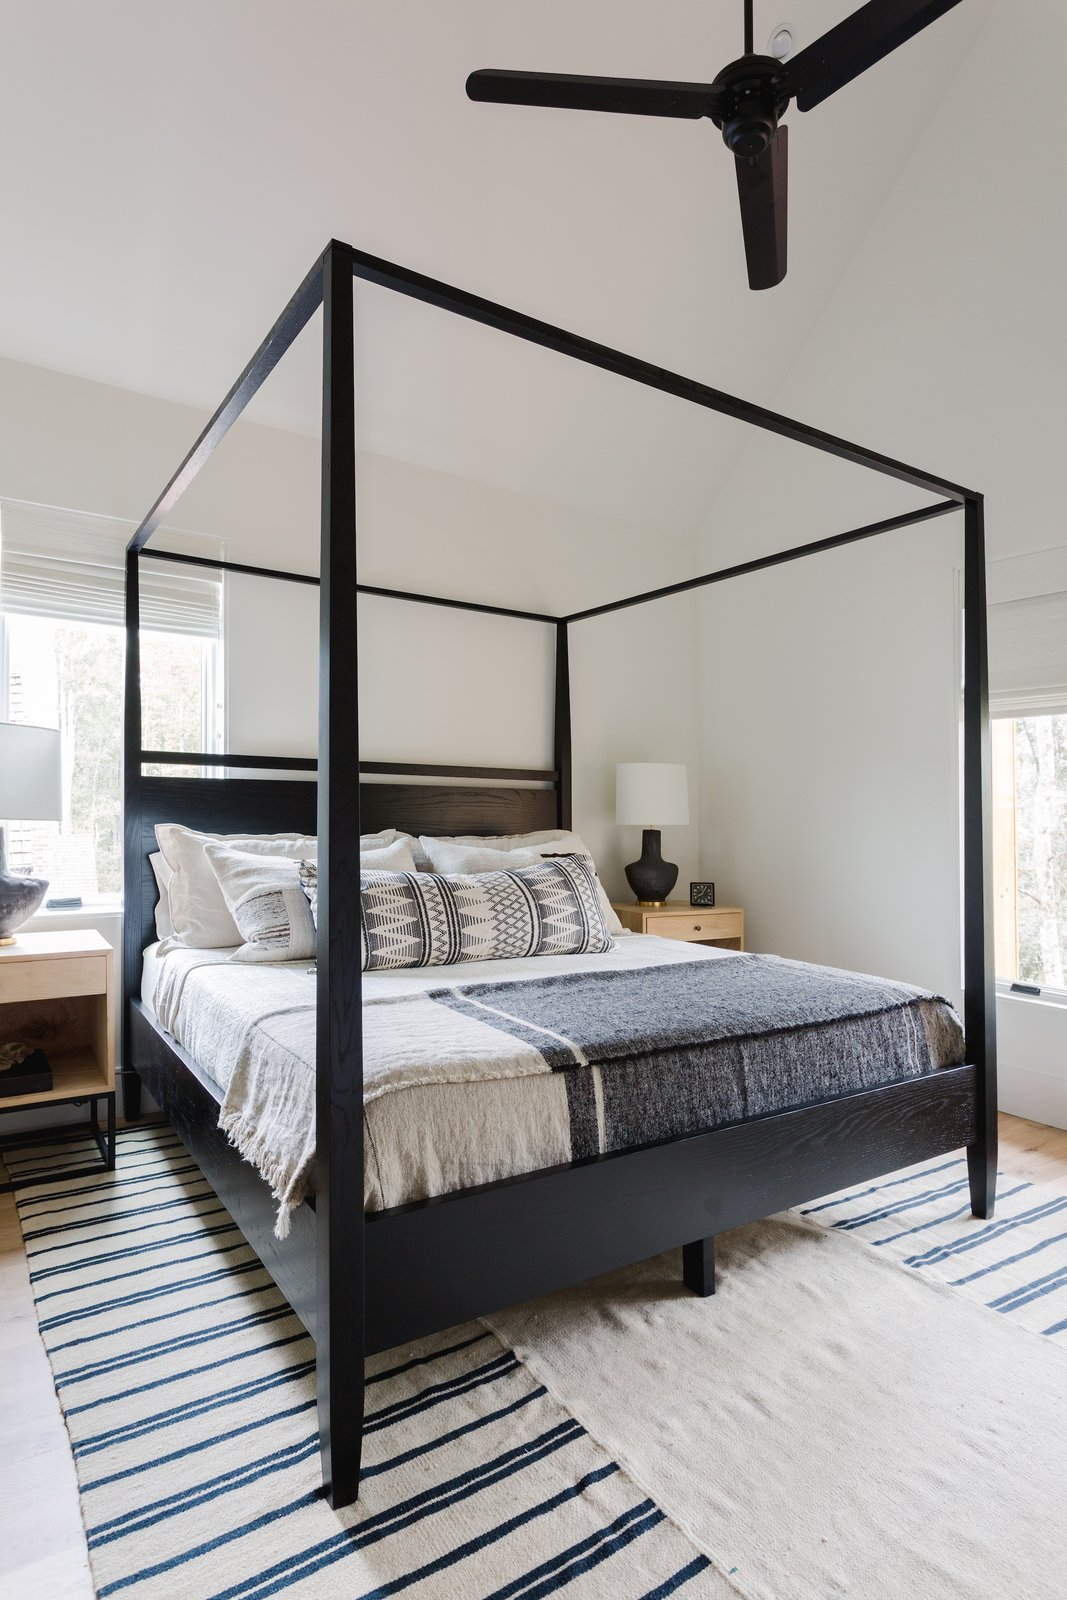 Naturally House guest bedroom canopy bed